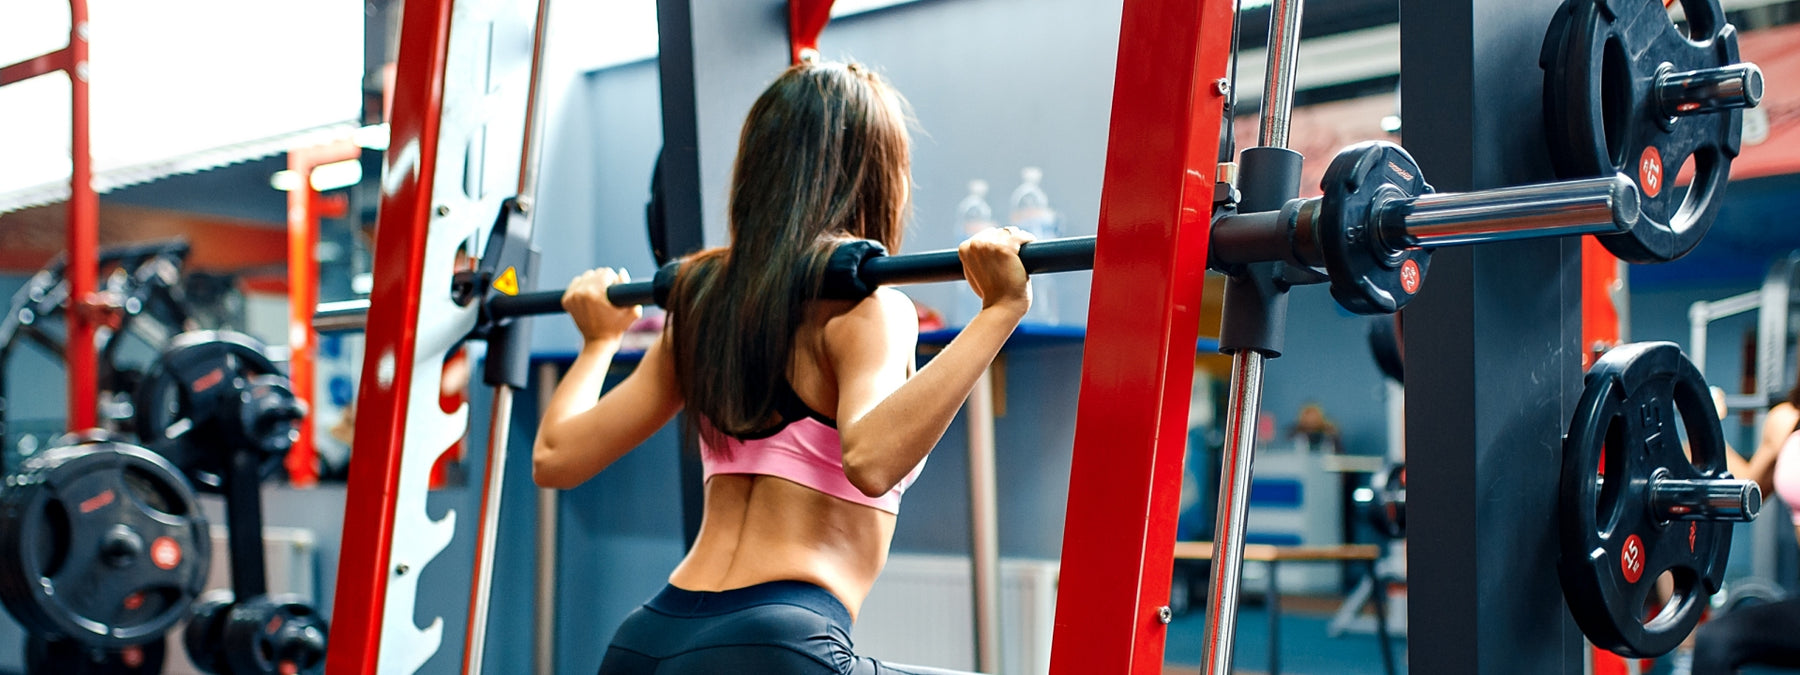 Can You Build Muscle With a Smith Machine?